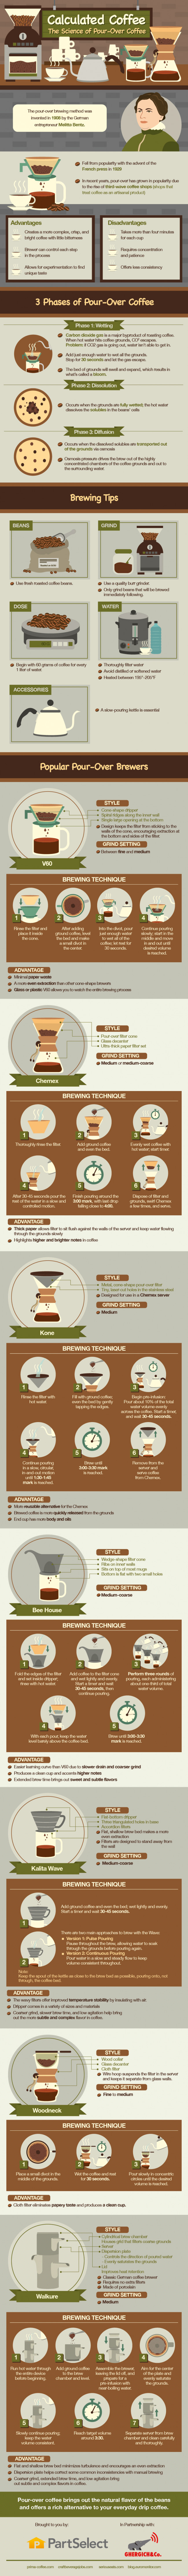 The Science of Pour Over Coffee: Brewing Methods